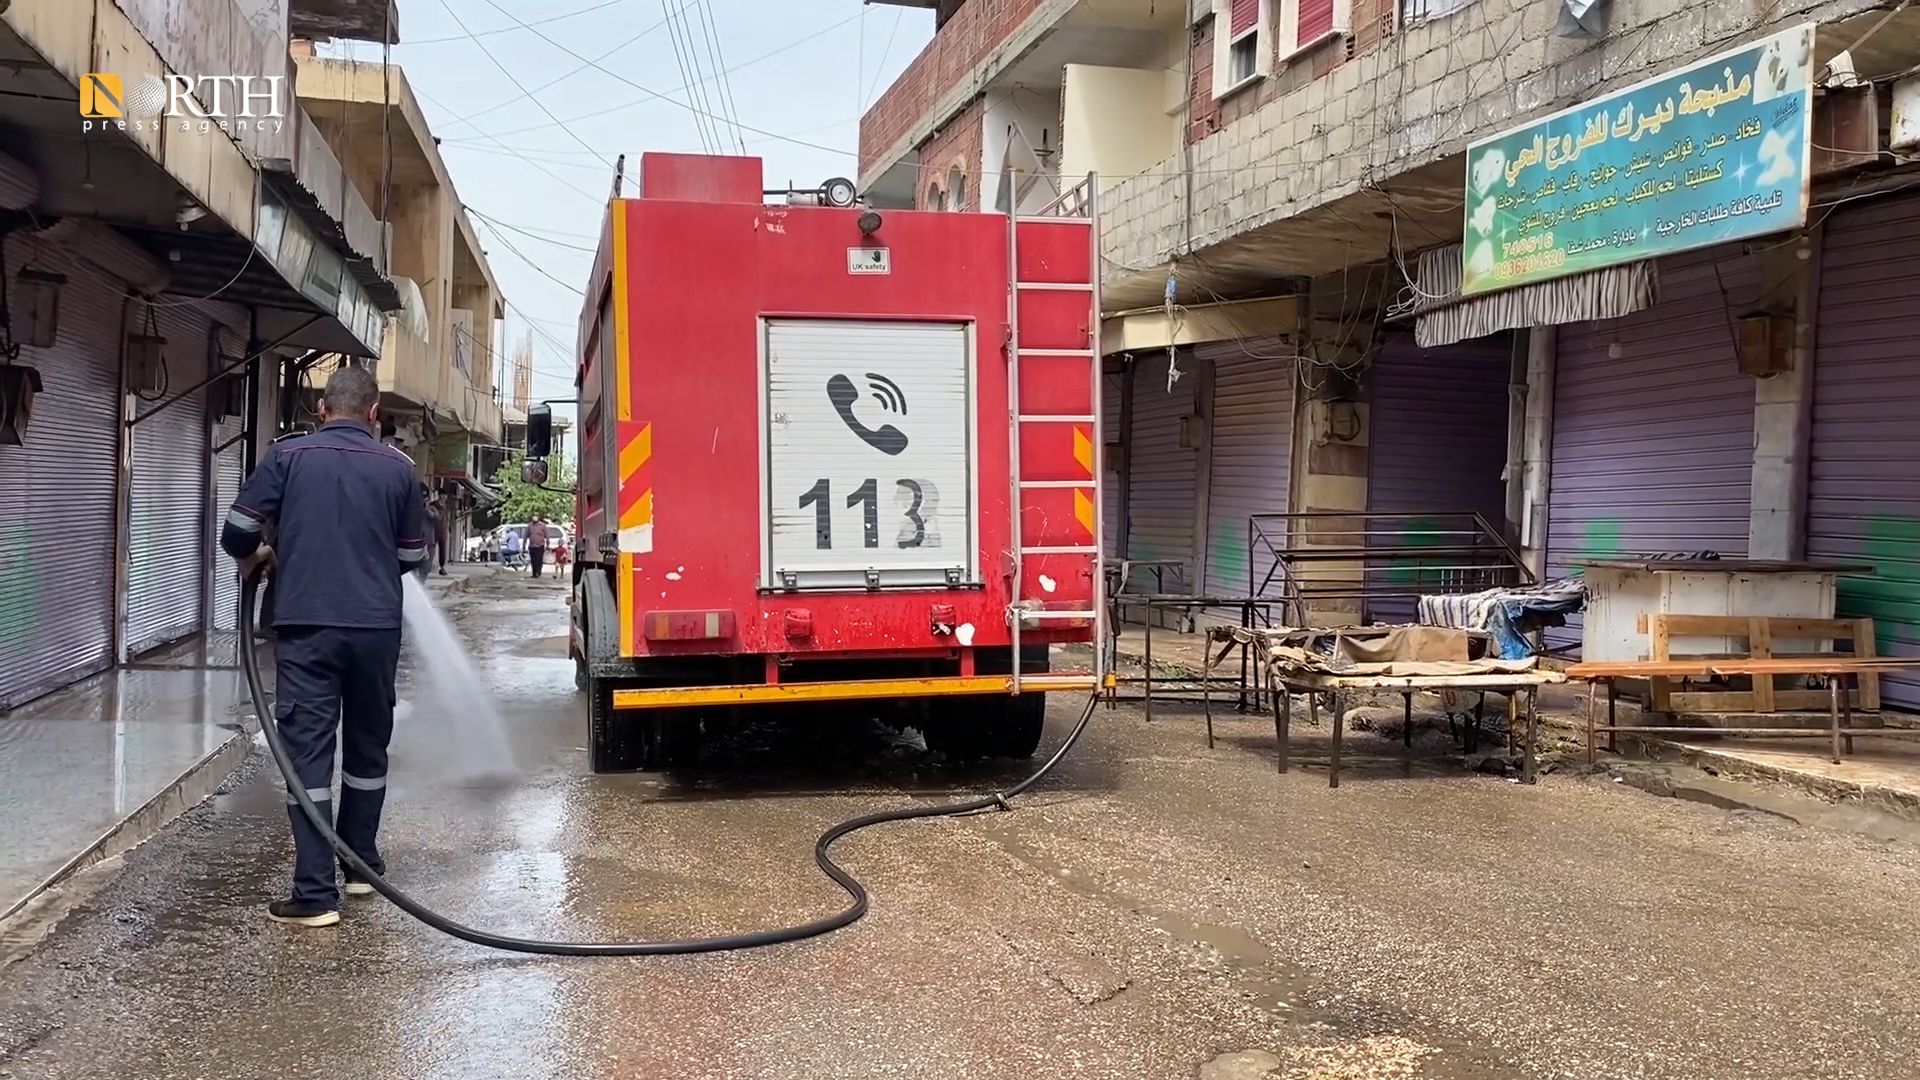 Cleaning campaign in the market city of Derik – North Press